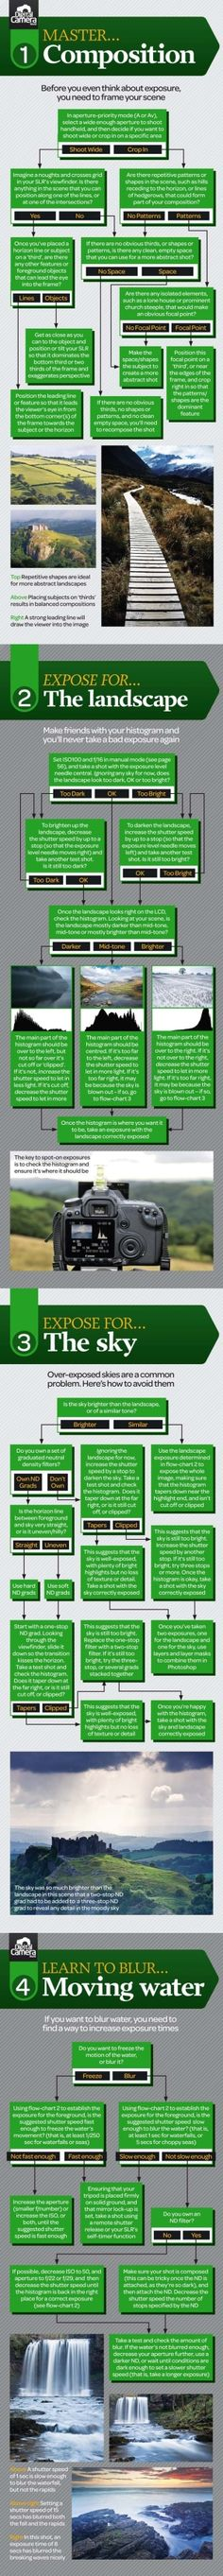 Free landscape photography cheat sheet- Digital Camera World by Bali